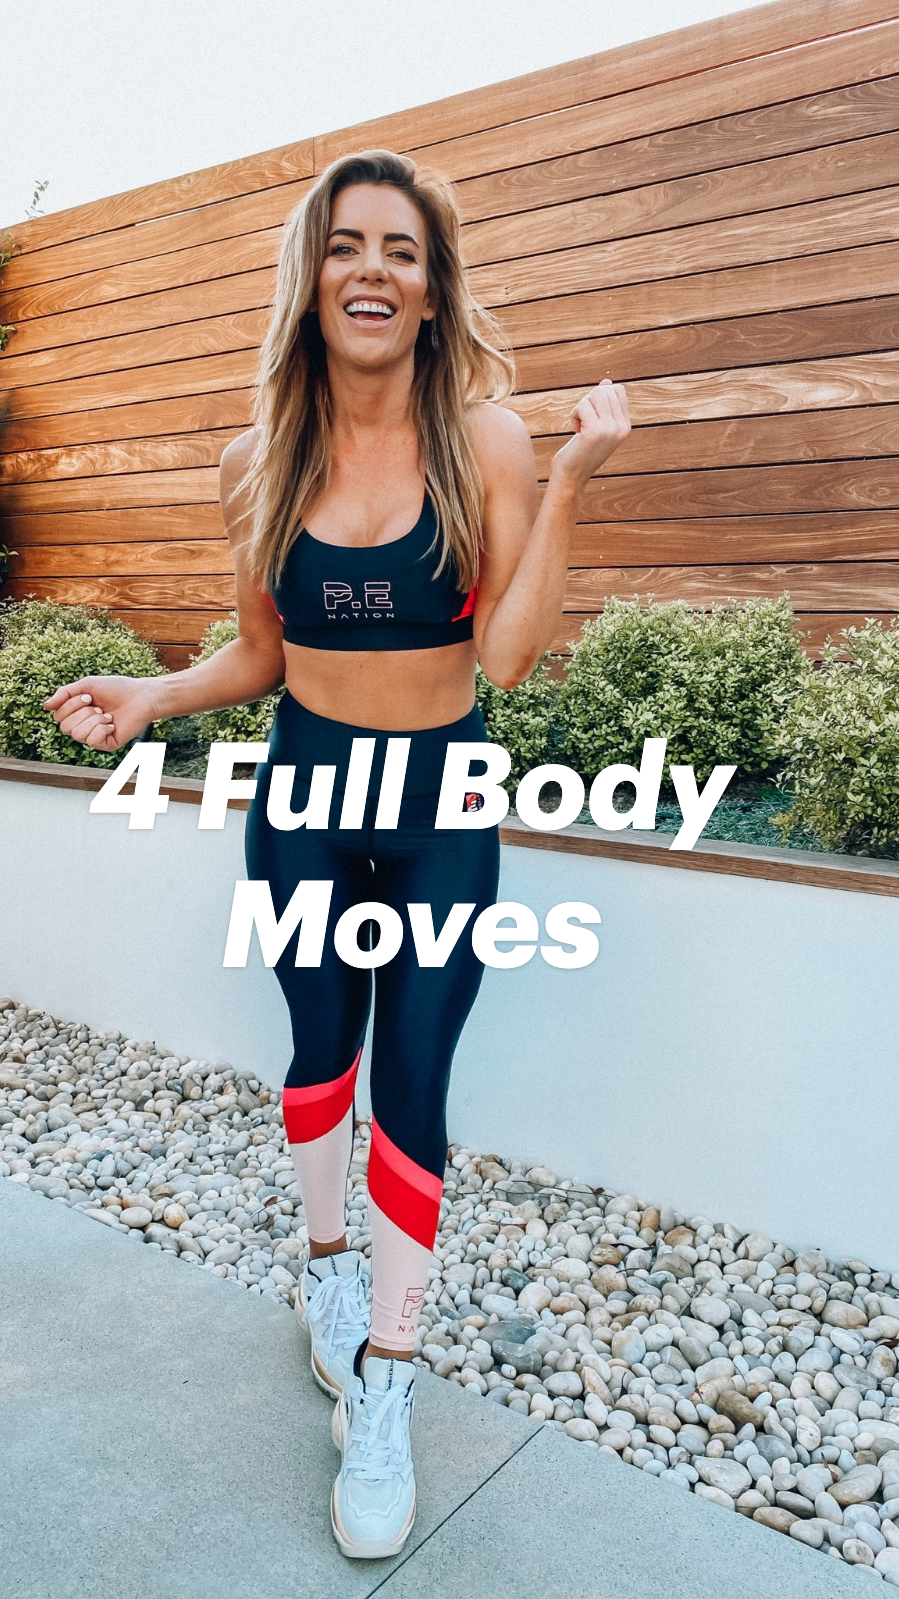 4 Full Body Moves